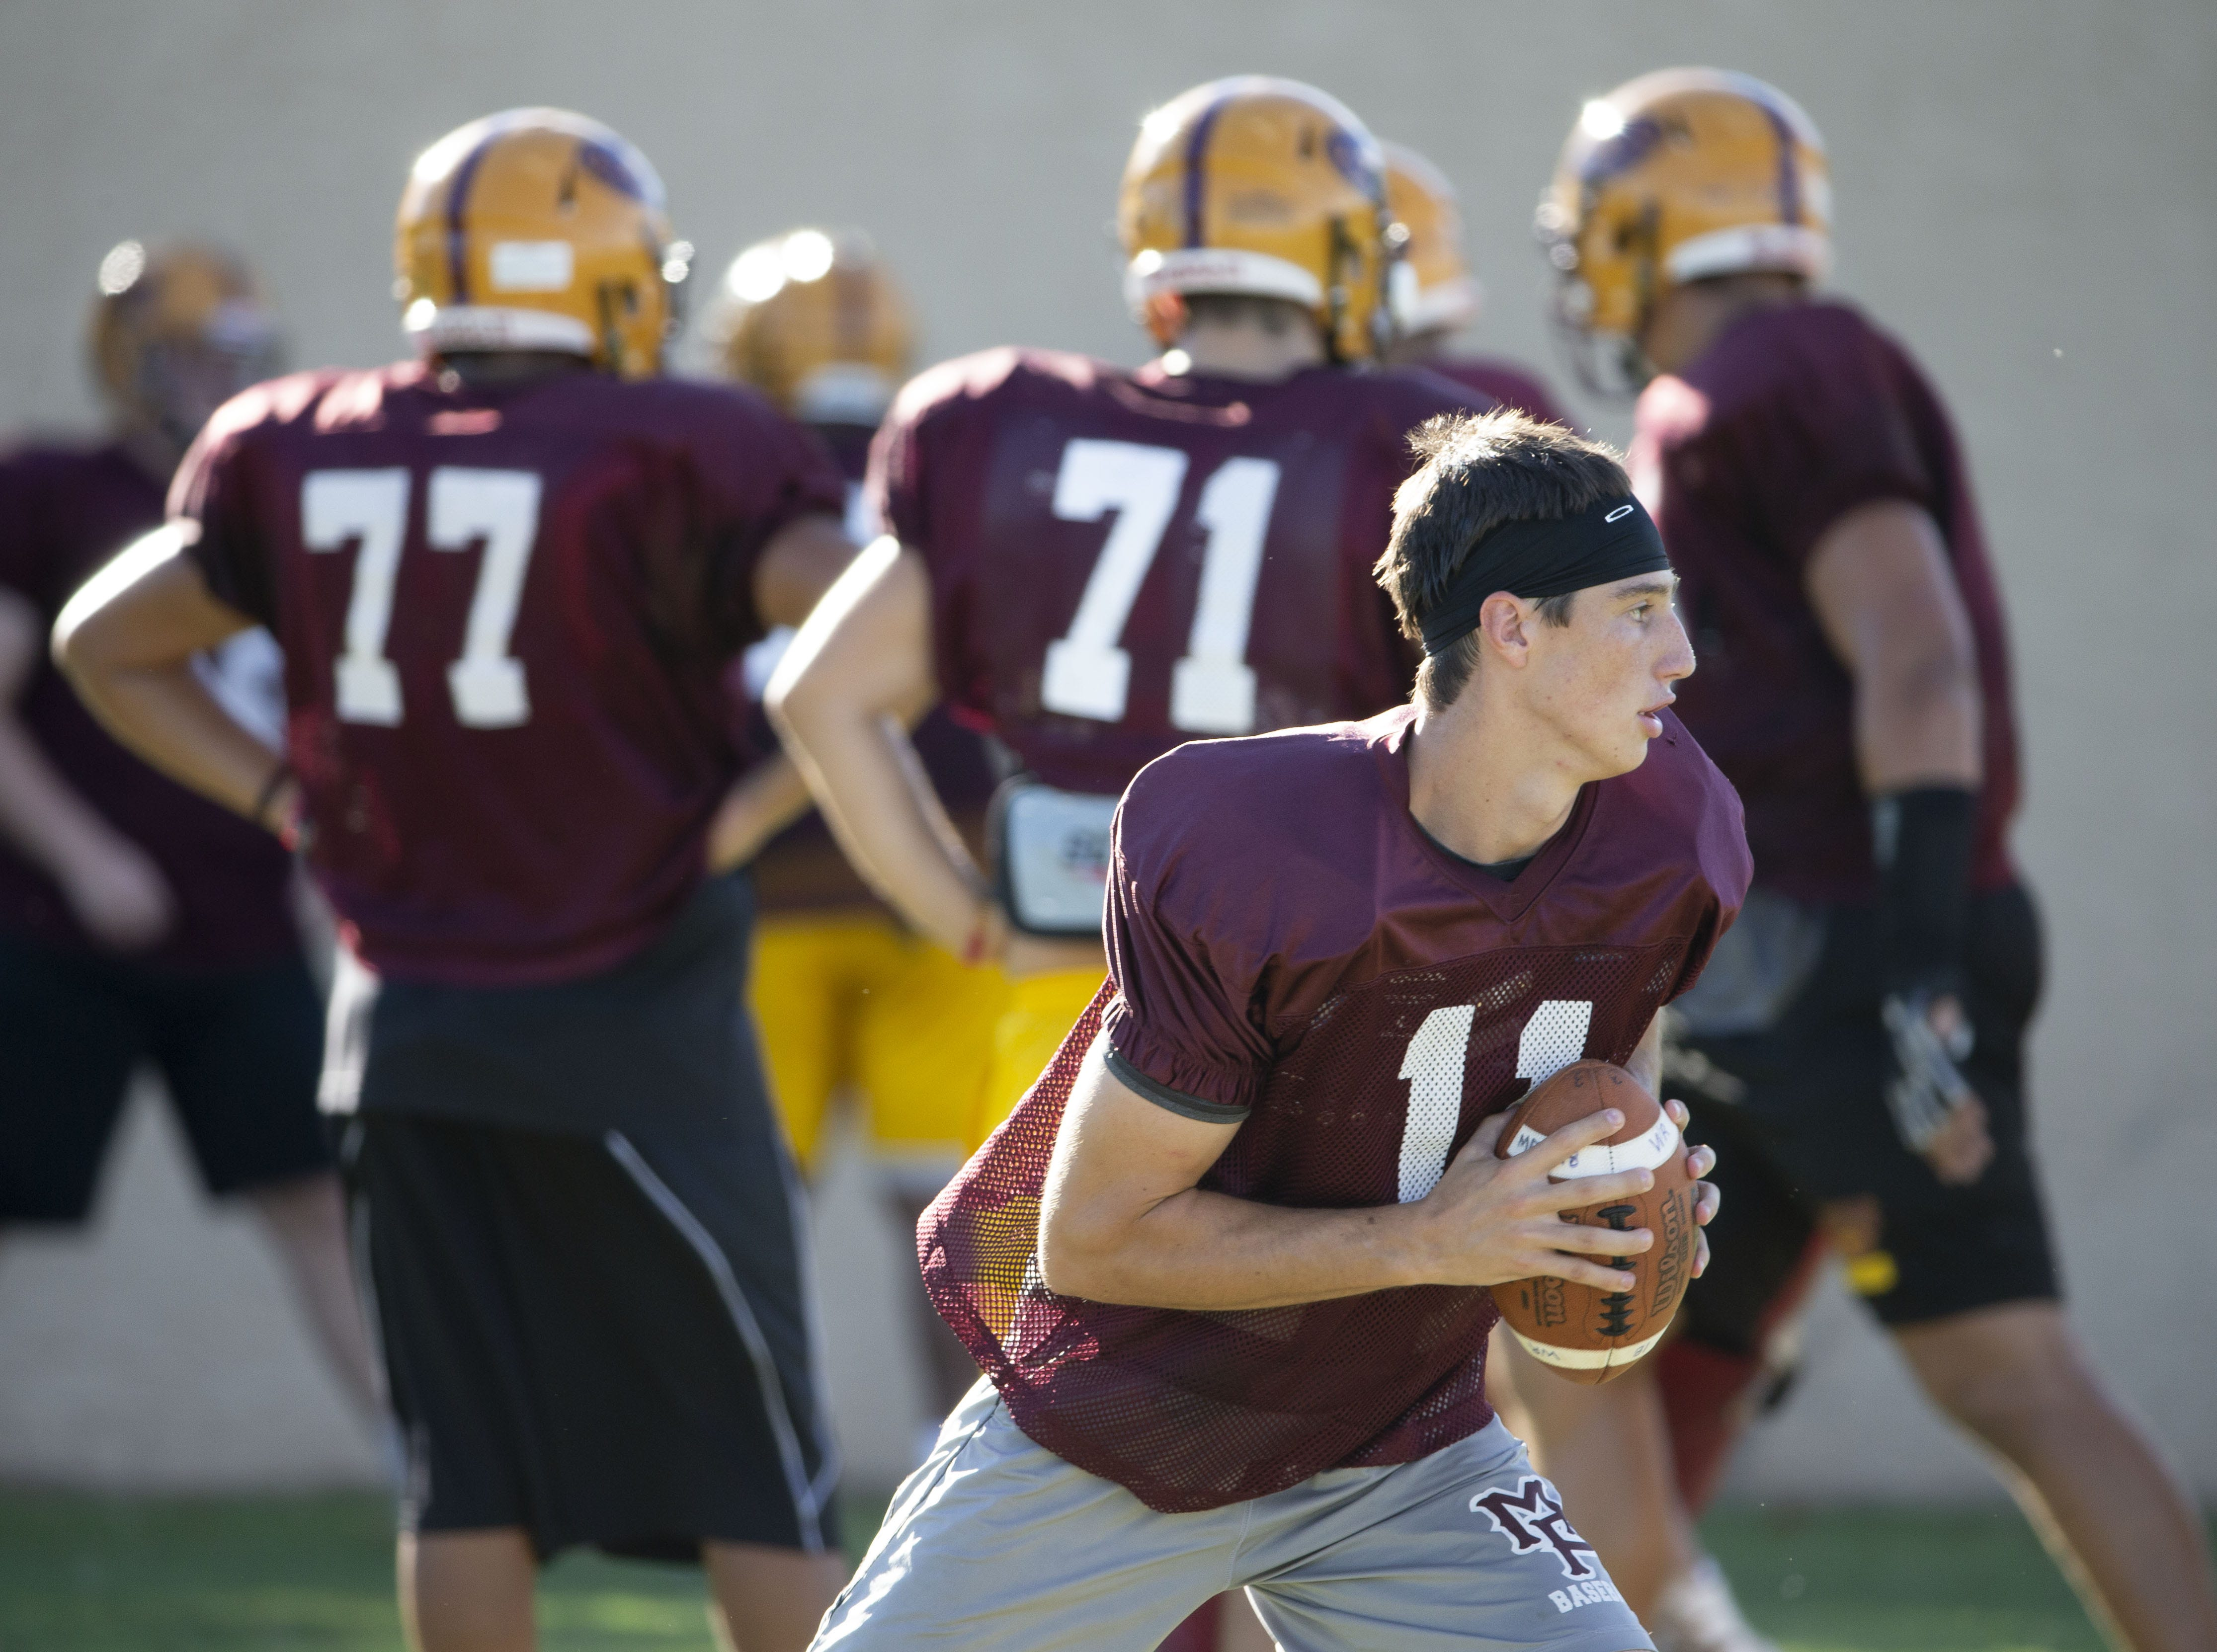 Mountain Pointe's quarterback Nick Wallerstedt runs a drill during practice in Phoenix on October 3, 2018.